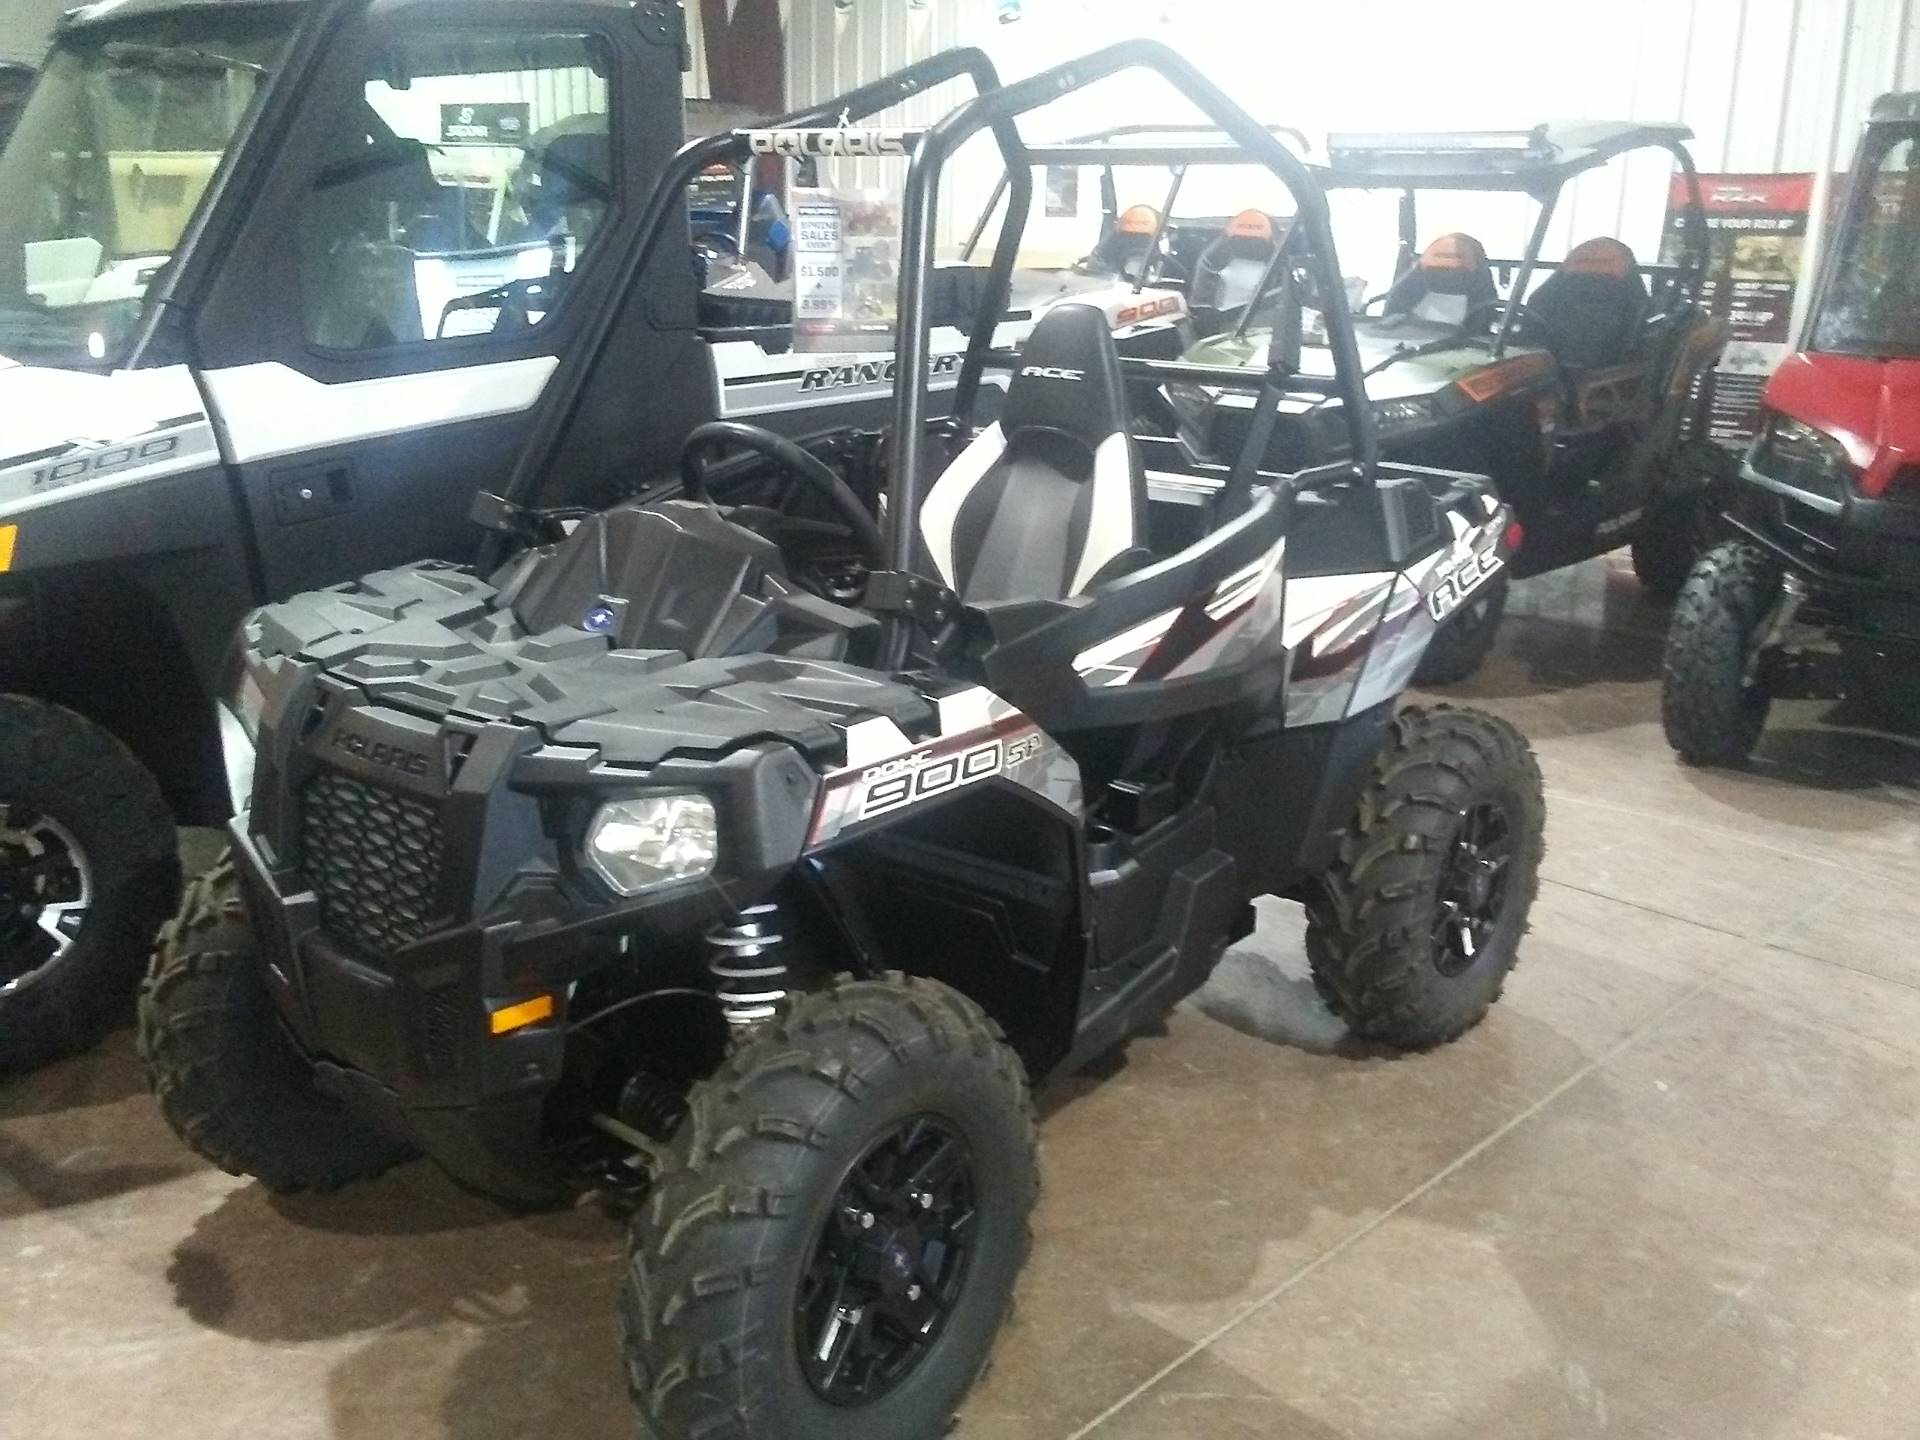 2016 Polaris ACE 900 SP in Prosperity, Pennsylvania - Photo 1